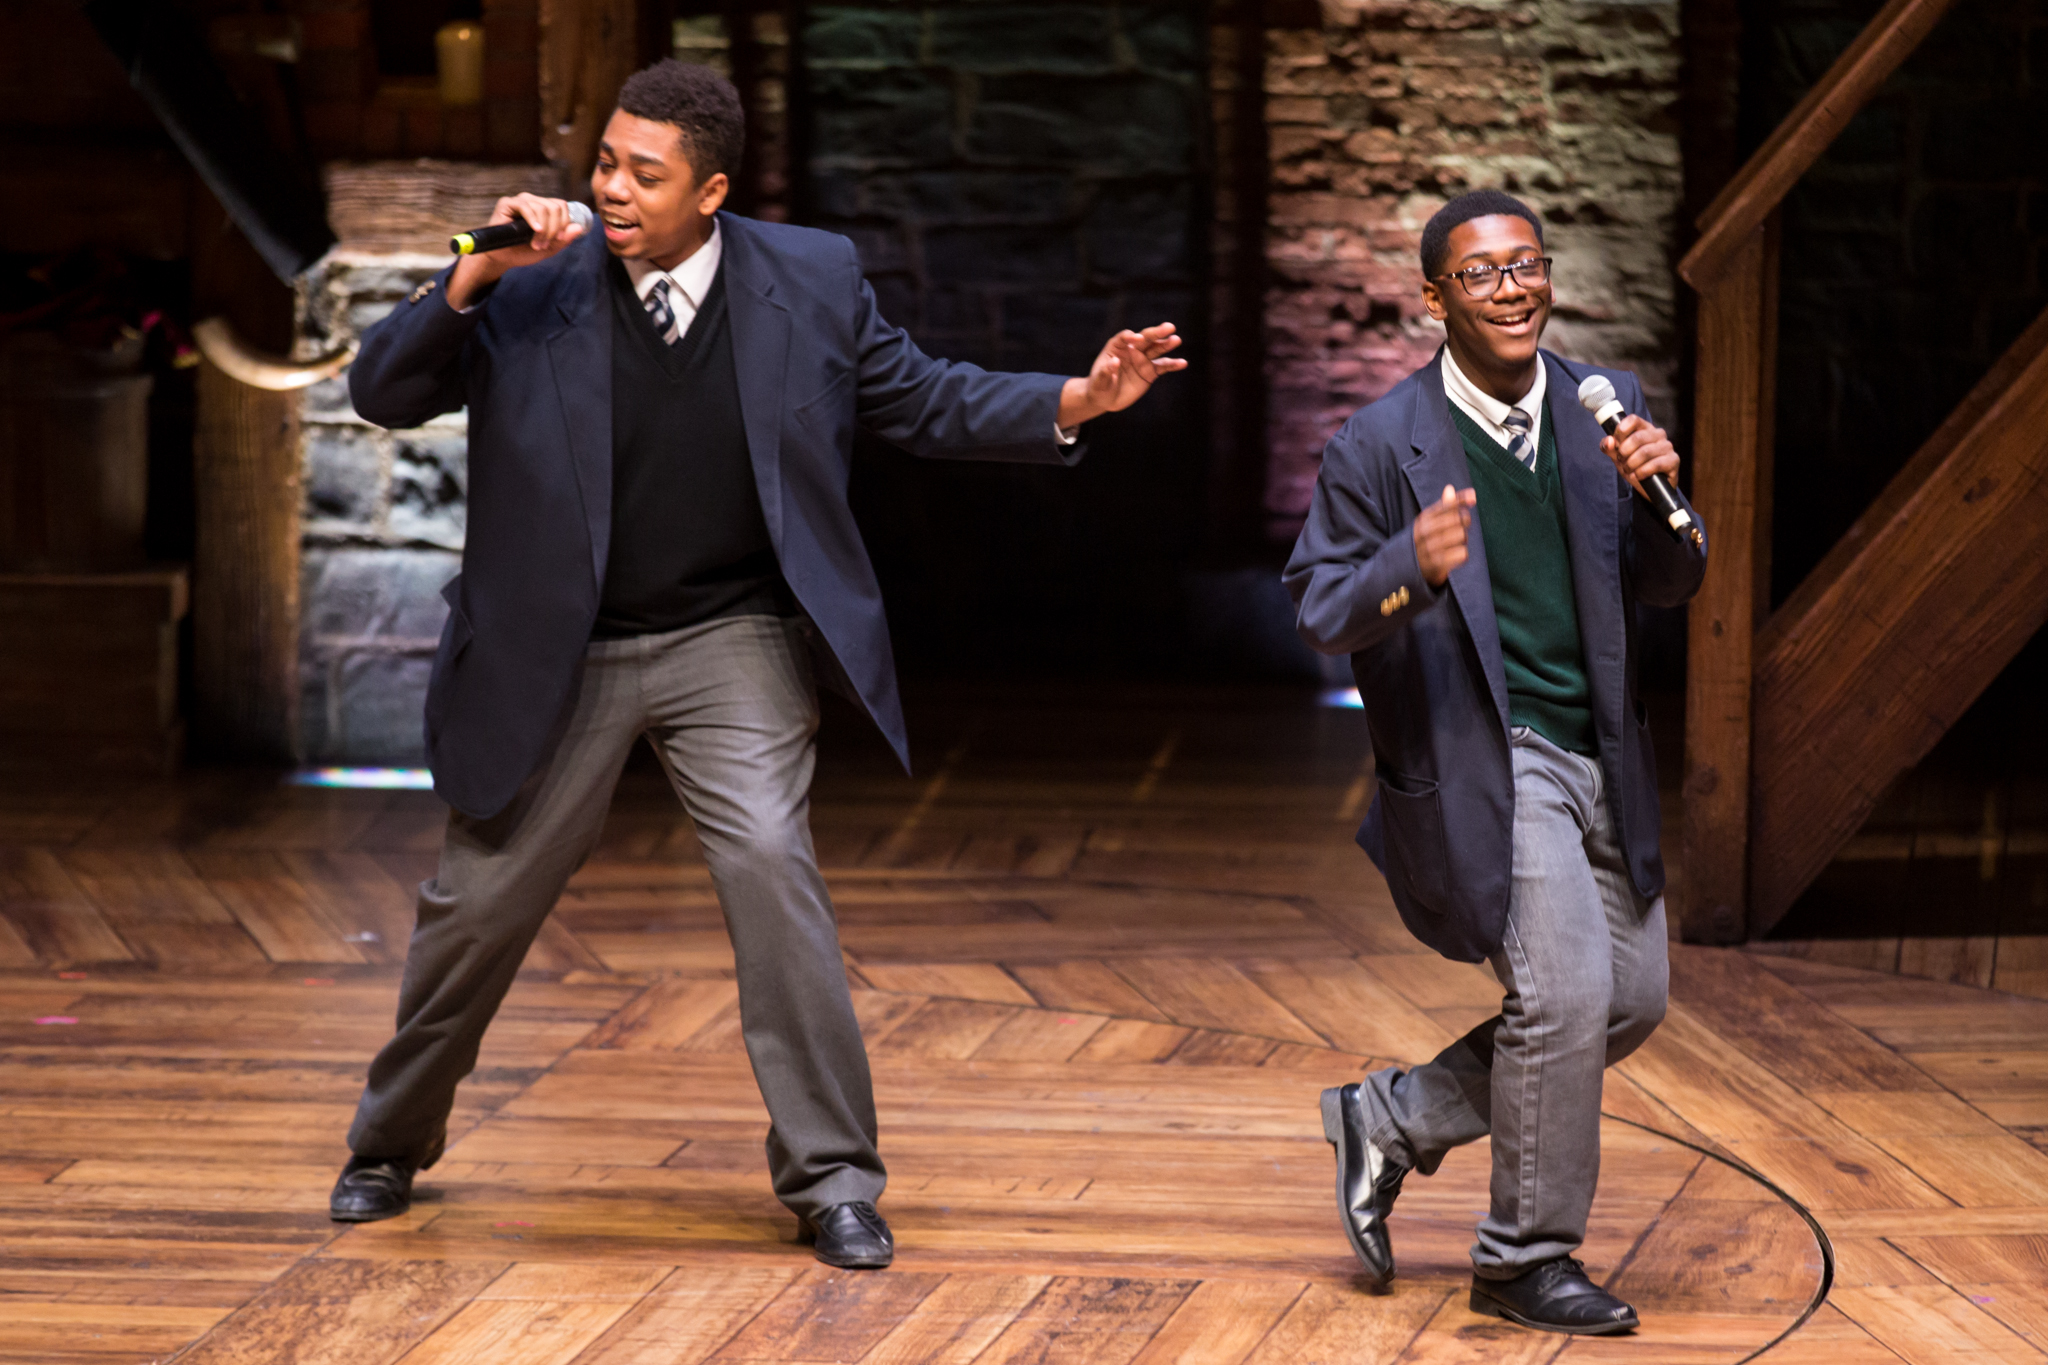 Students Marcus Bornelus and Kendrick Jones performing on stage during a HEP student matinee in Chicago on 02/ 22/17